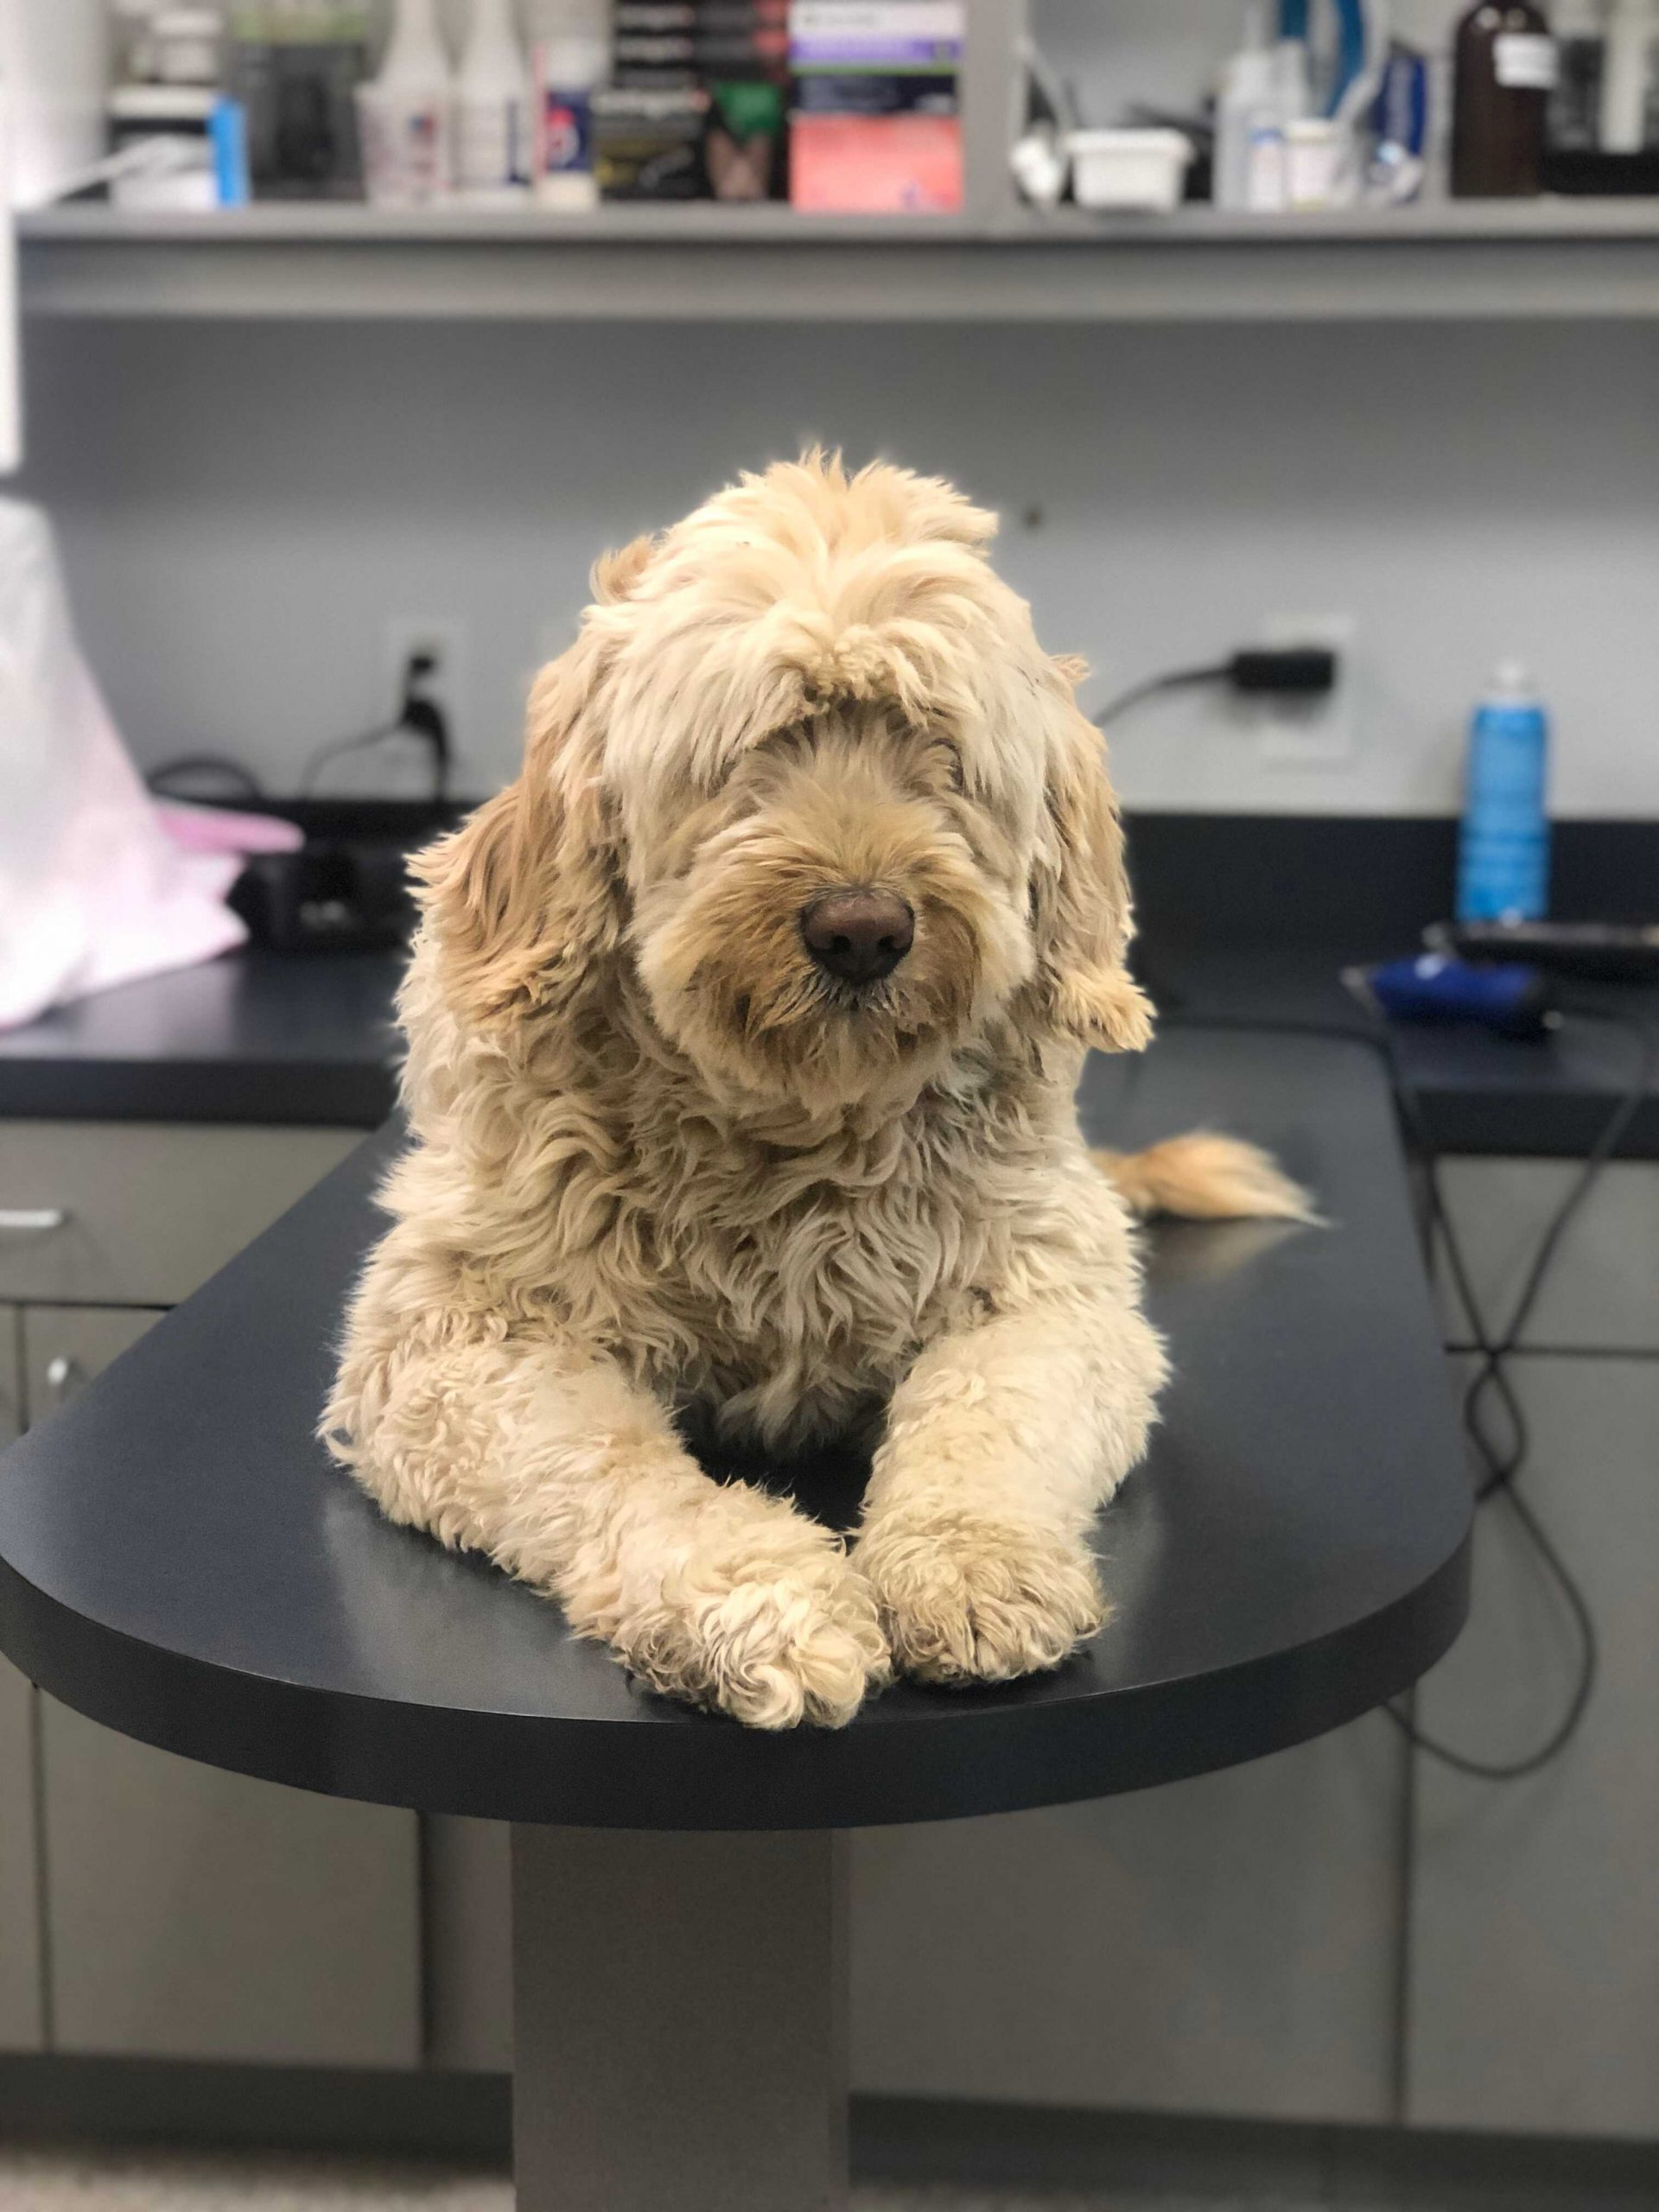 Cute pup relaxing on the exam table